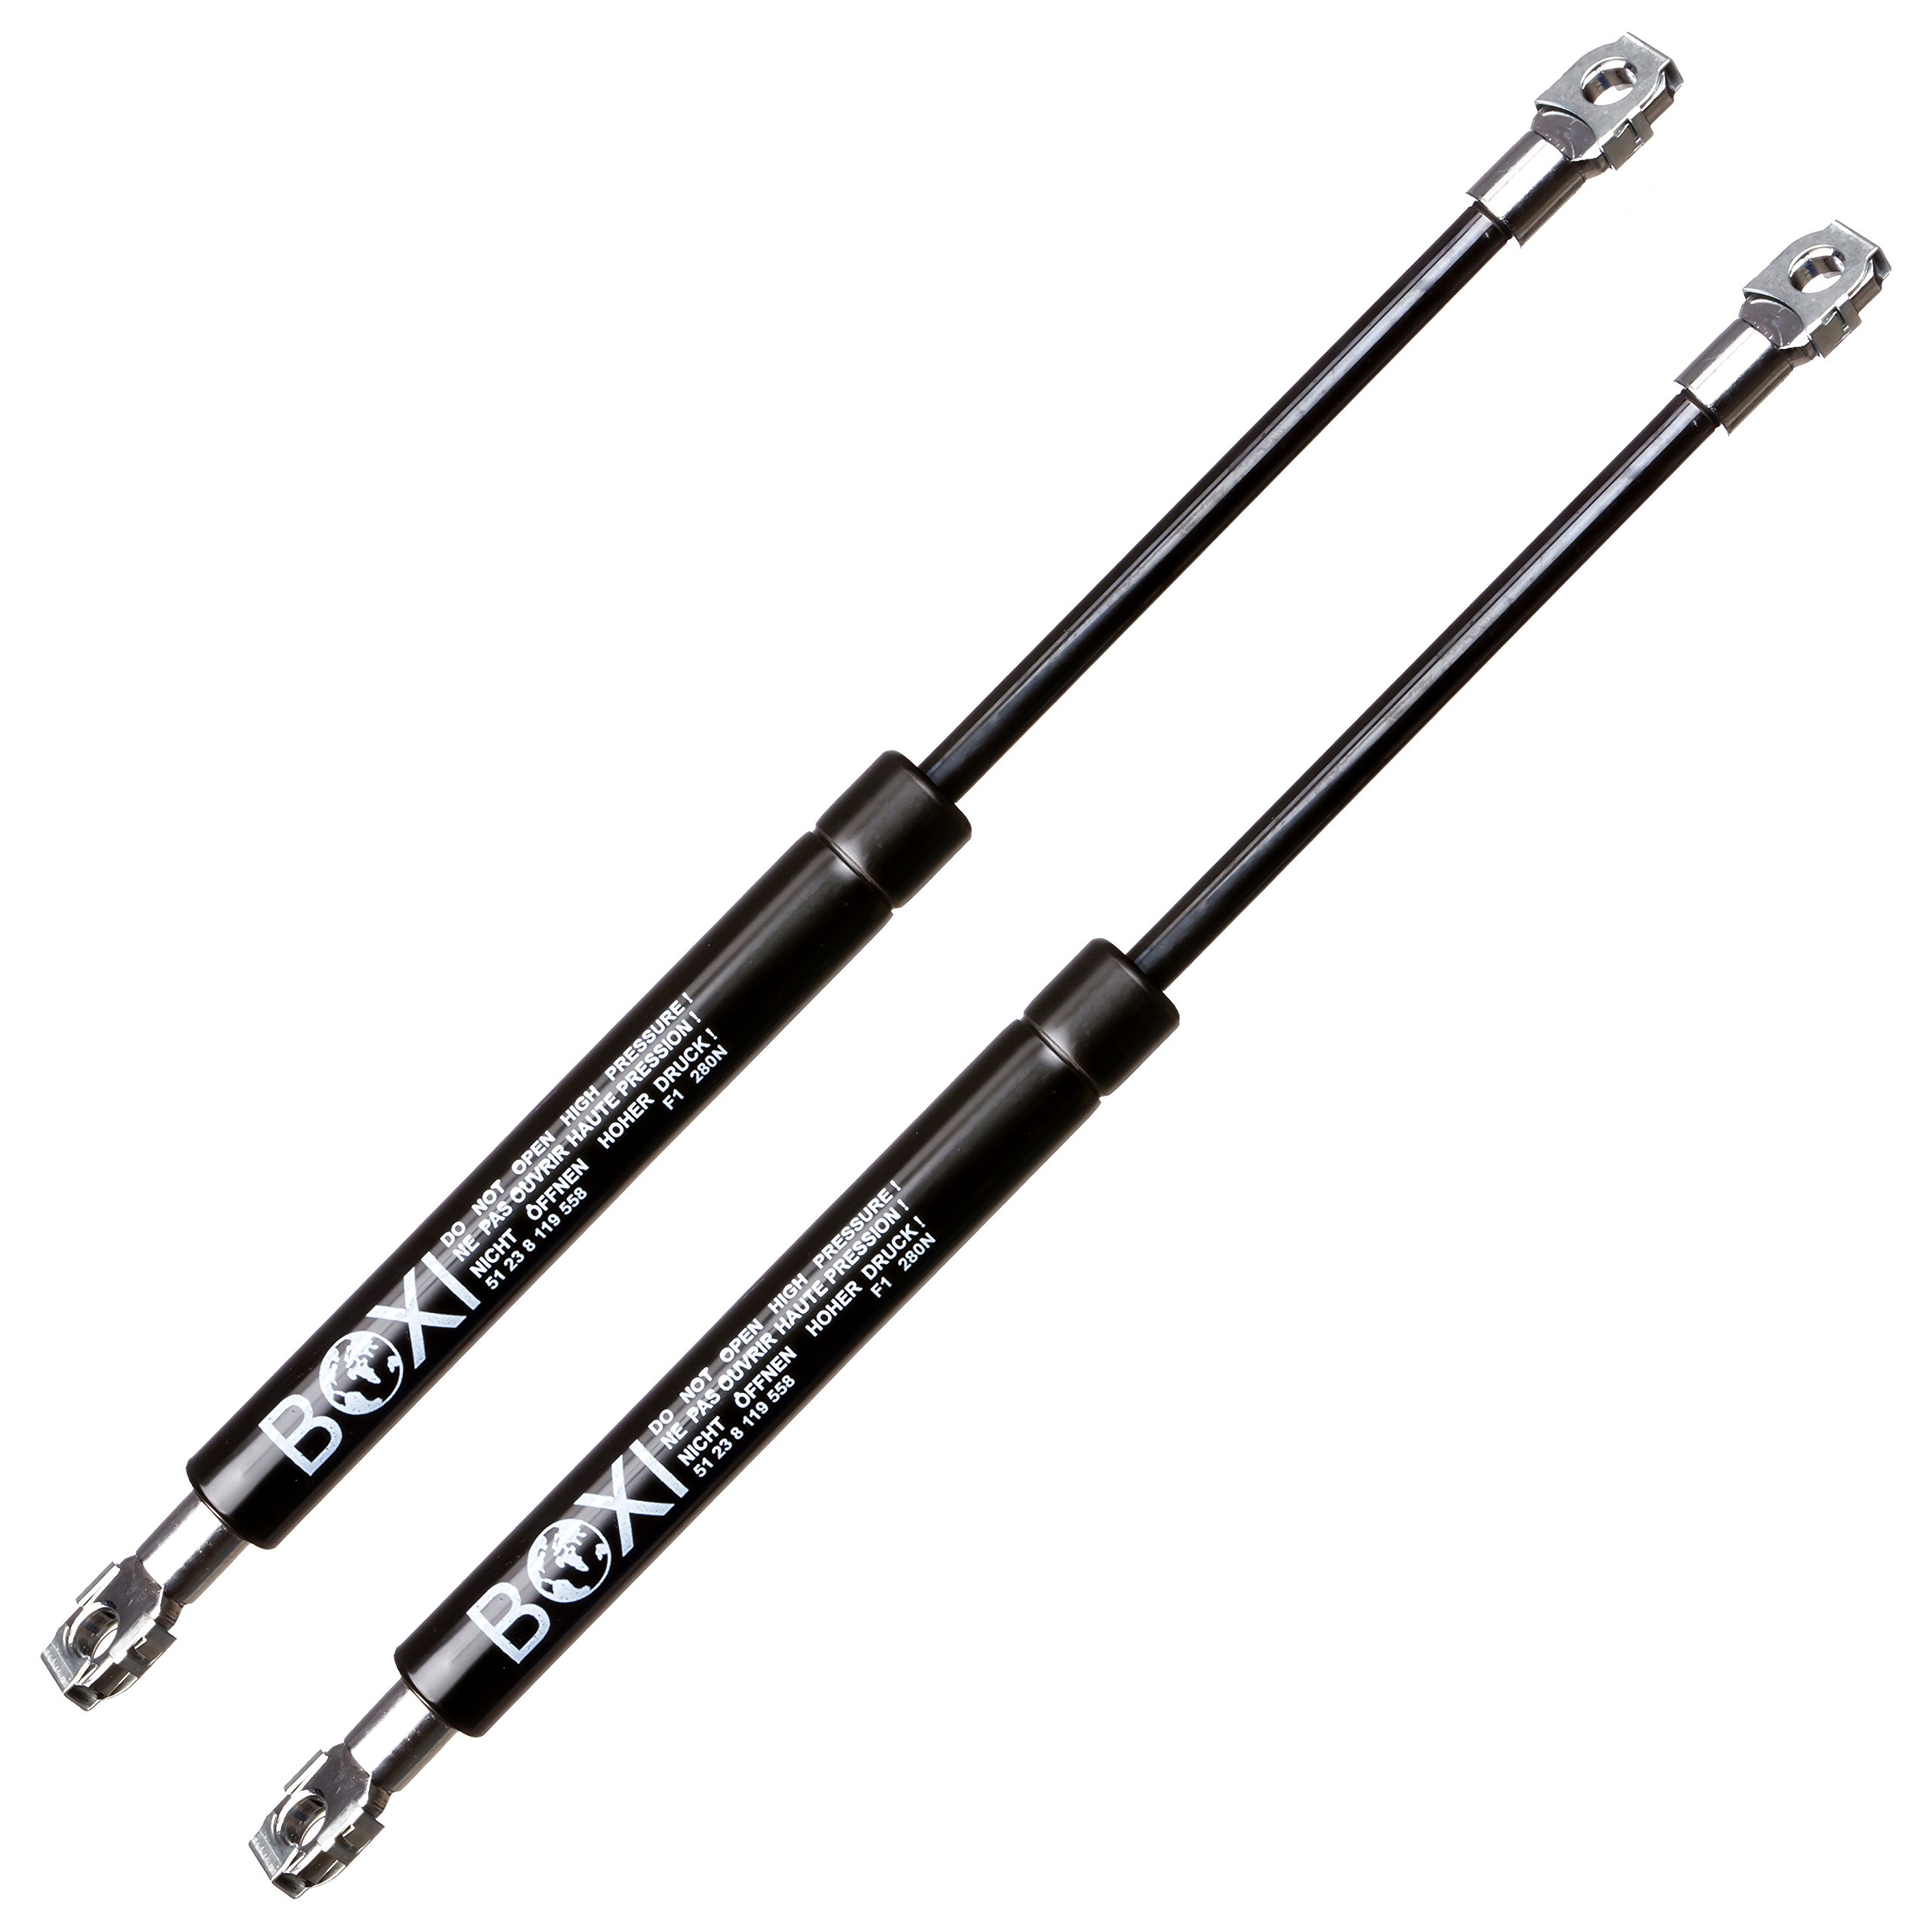 BOXI 2pcs Front Hood Gas Charged Lift Supports Struts Shocks Spring Dampers For BMW E36 3 Series Convertible Coupe 1992-1999 Hood , 51238119558, SG302008, 6341